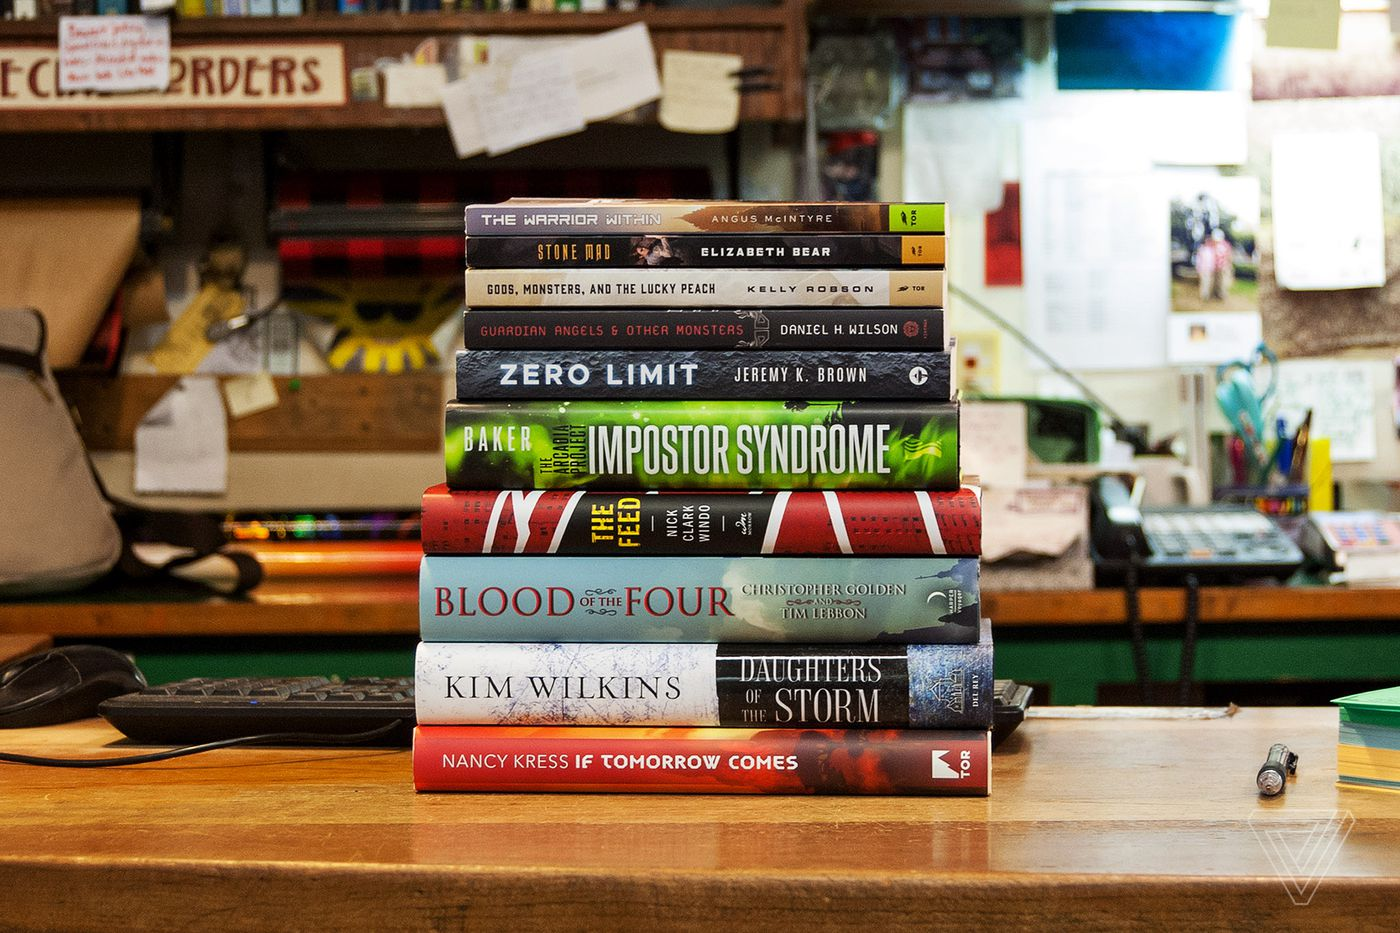 15 new science fiction and fantasy books to read this March